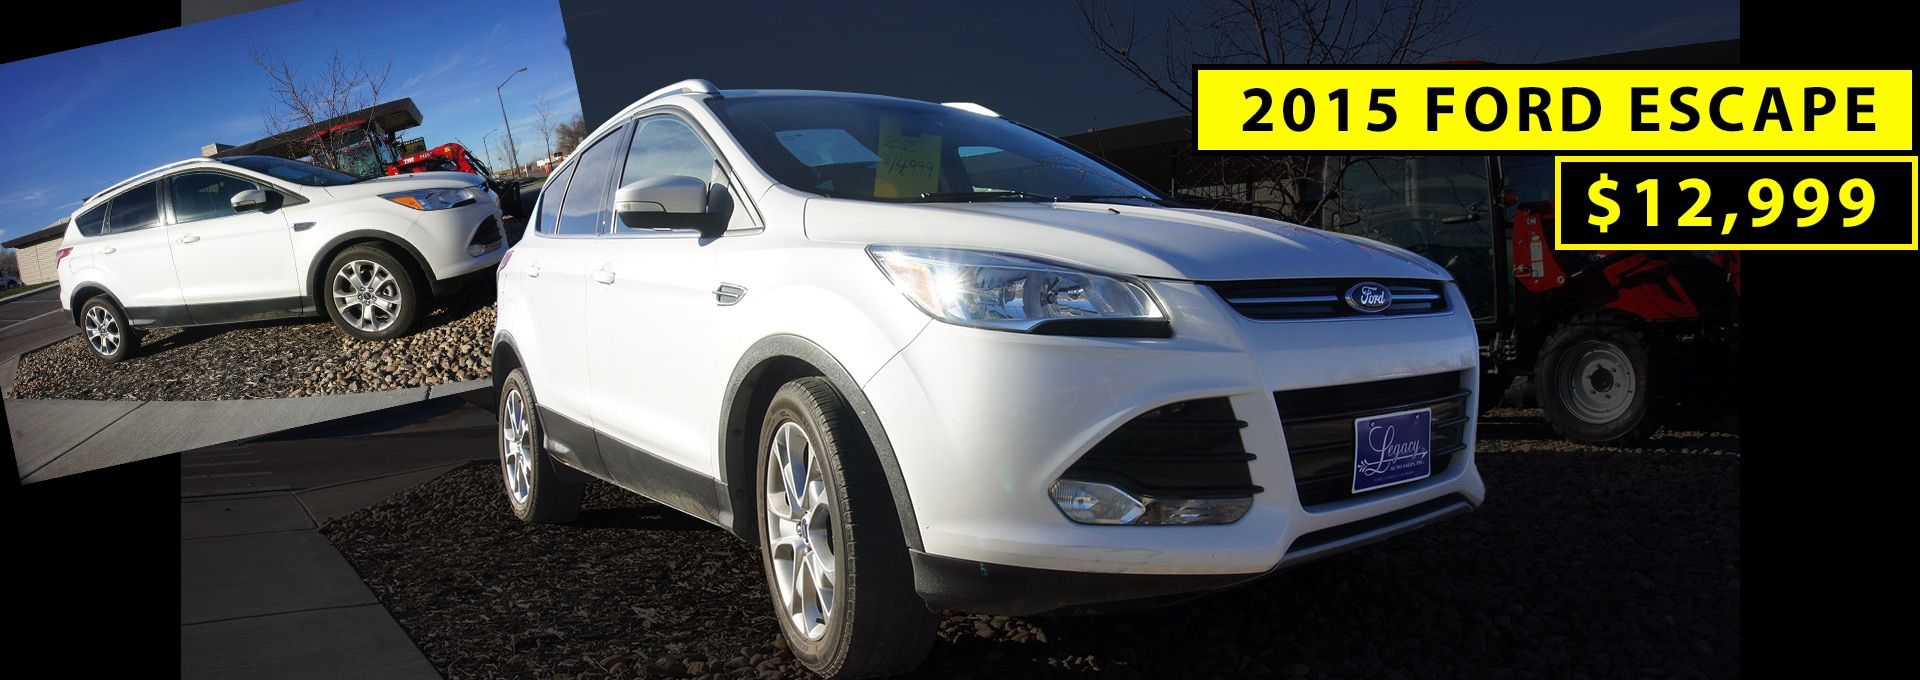 2015-Ford-Escape-12999